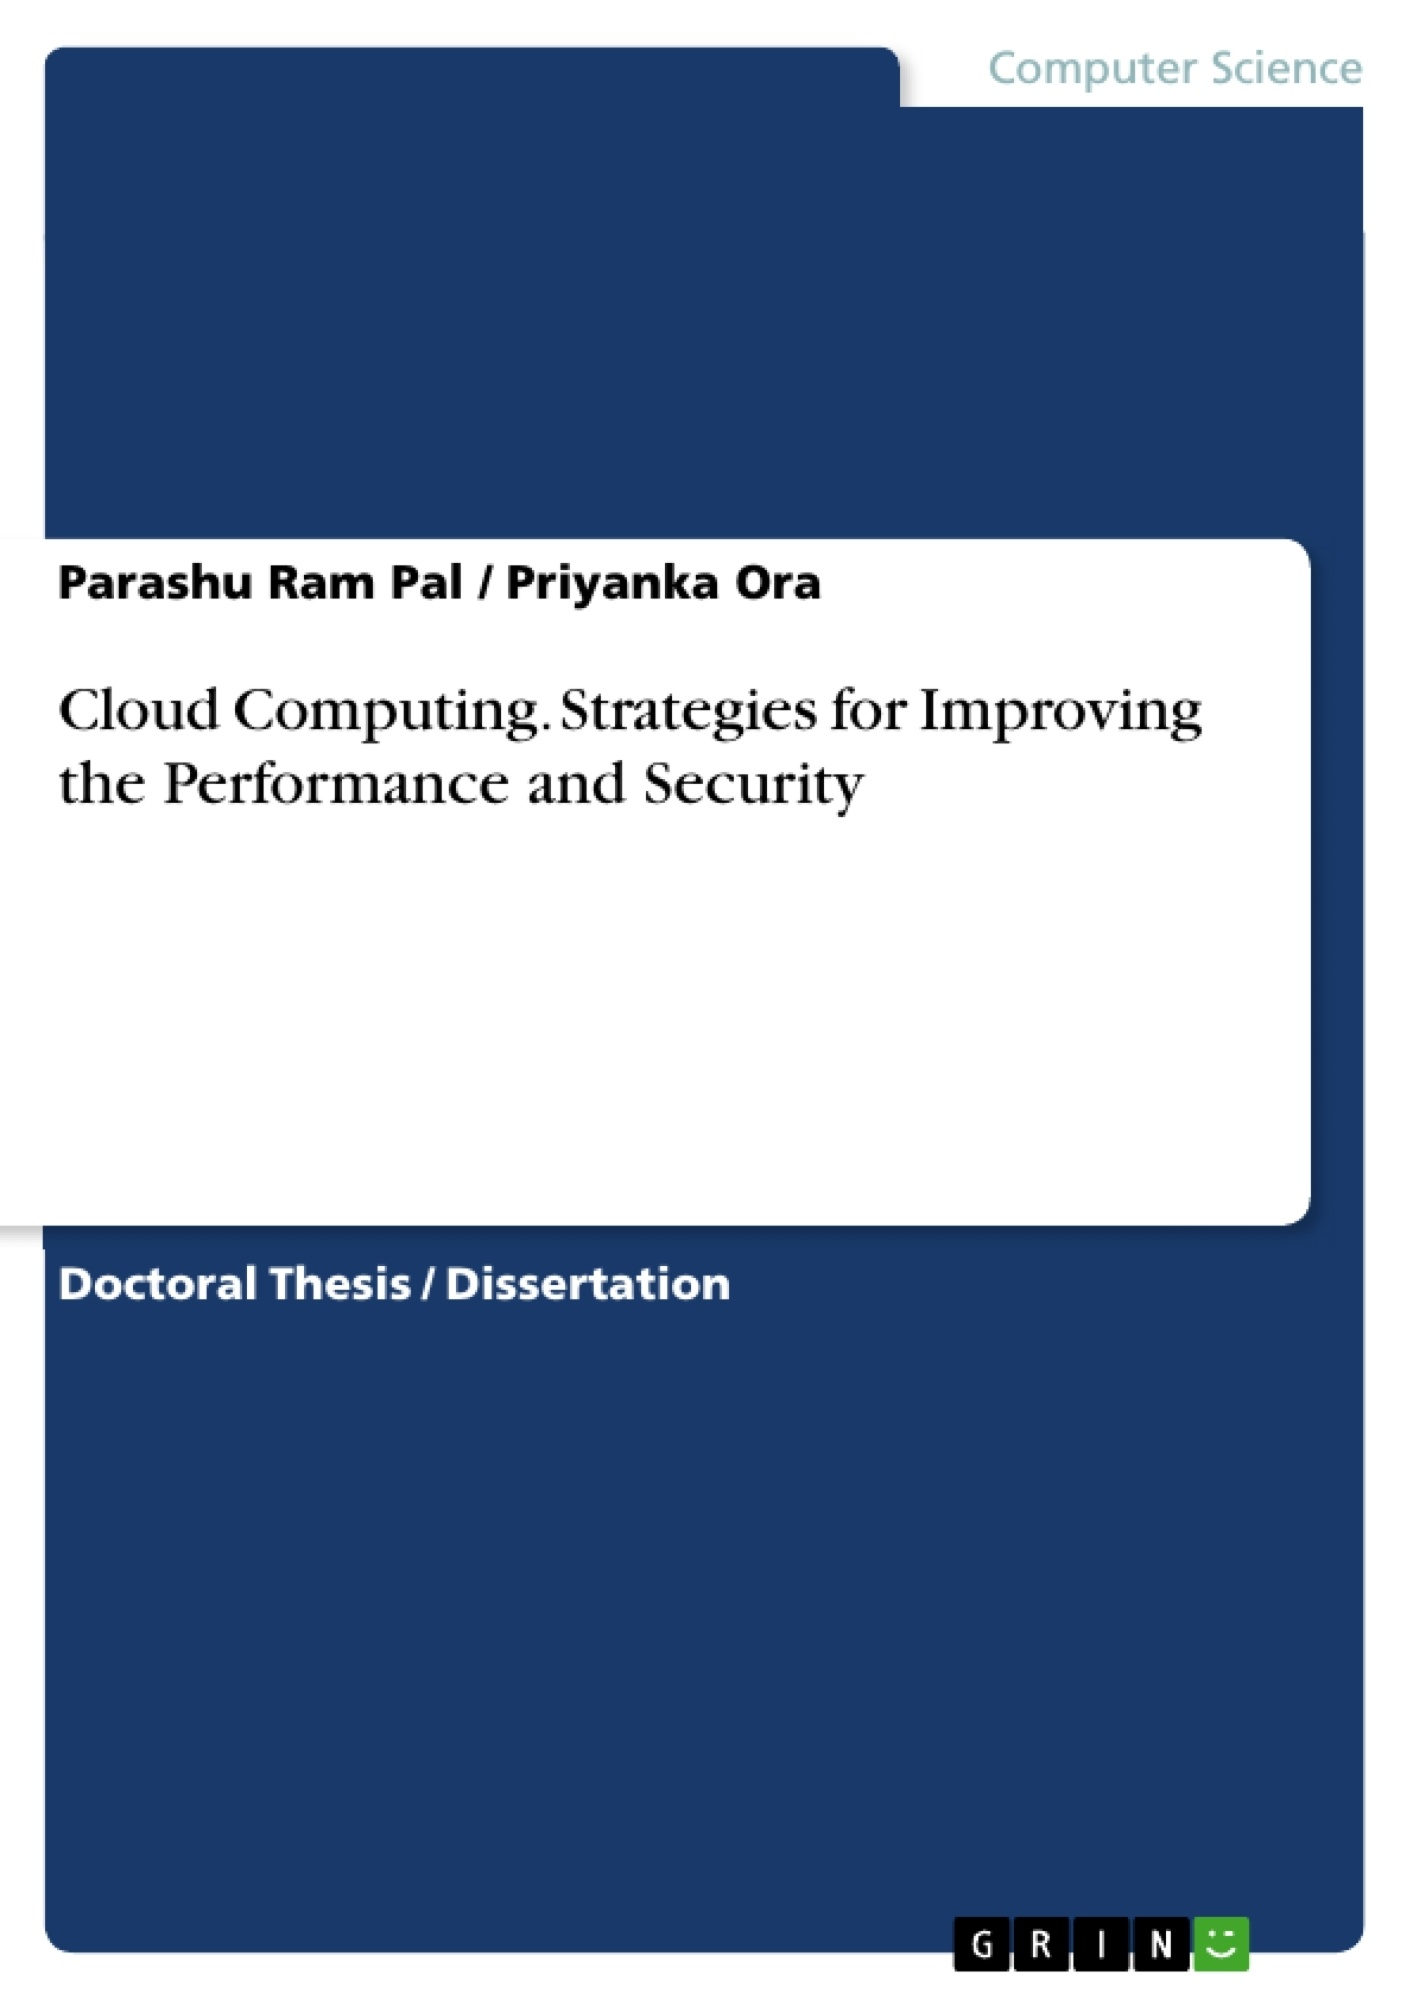 Title: Cloud Computing. Strategies for Improving the Performance and Security